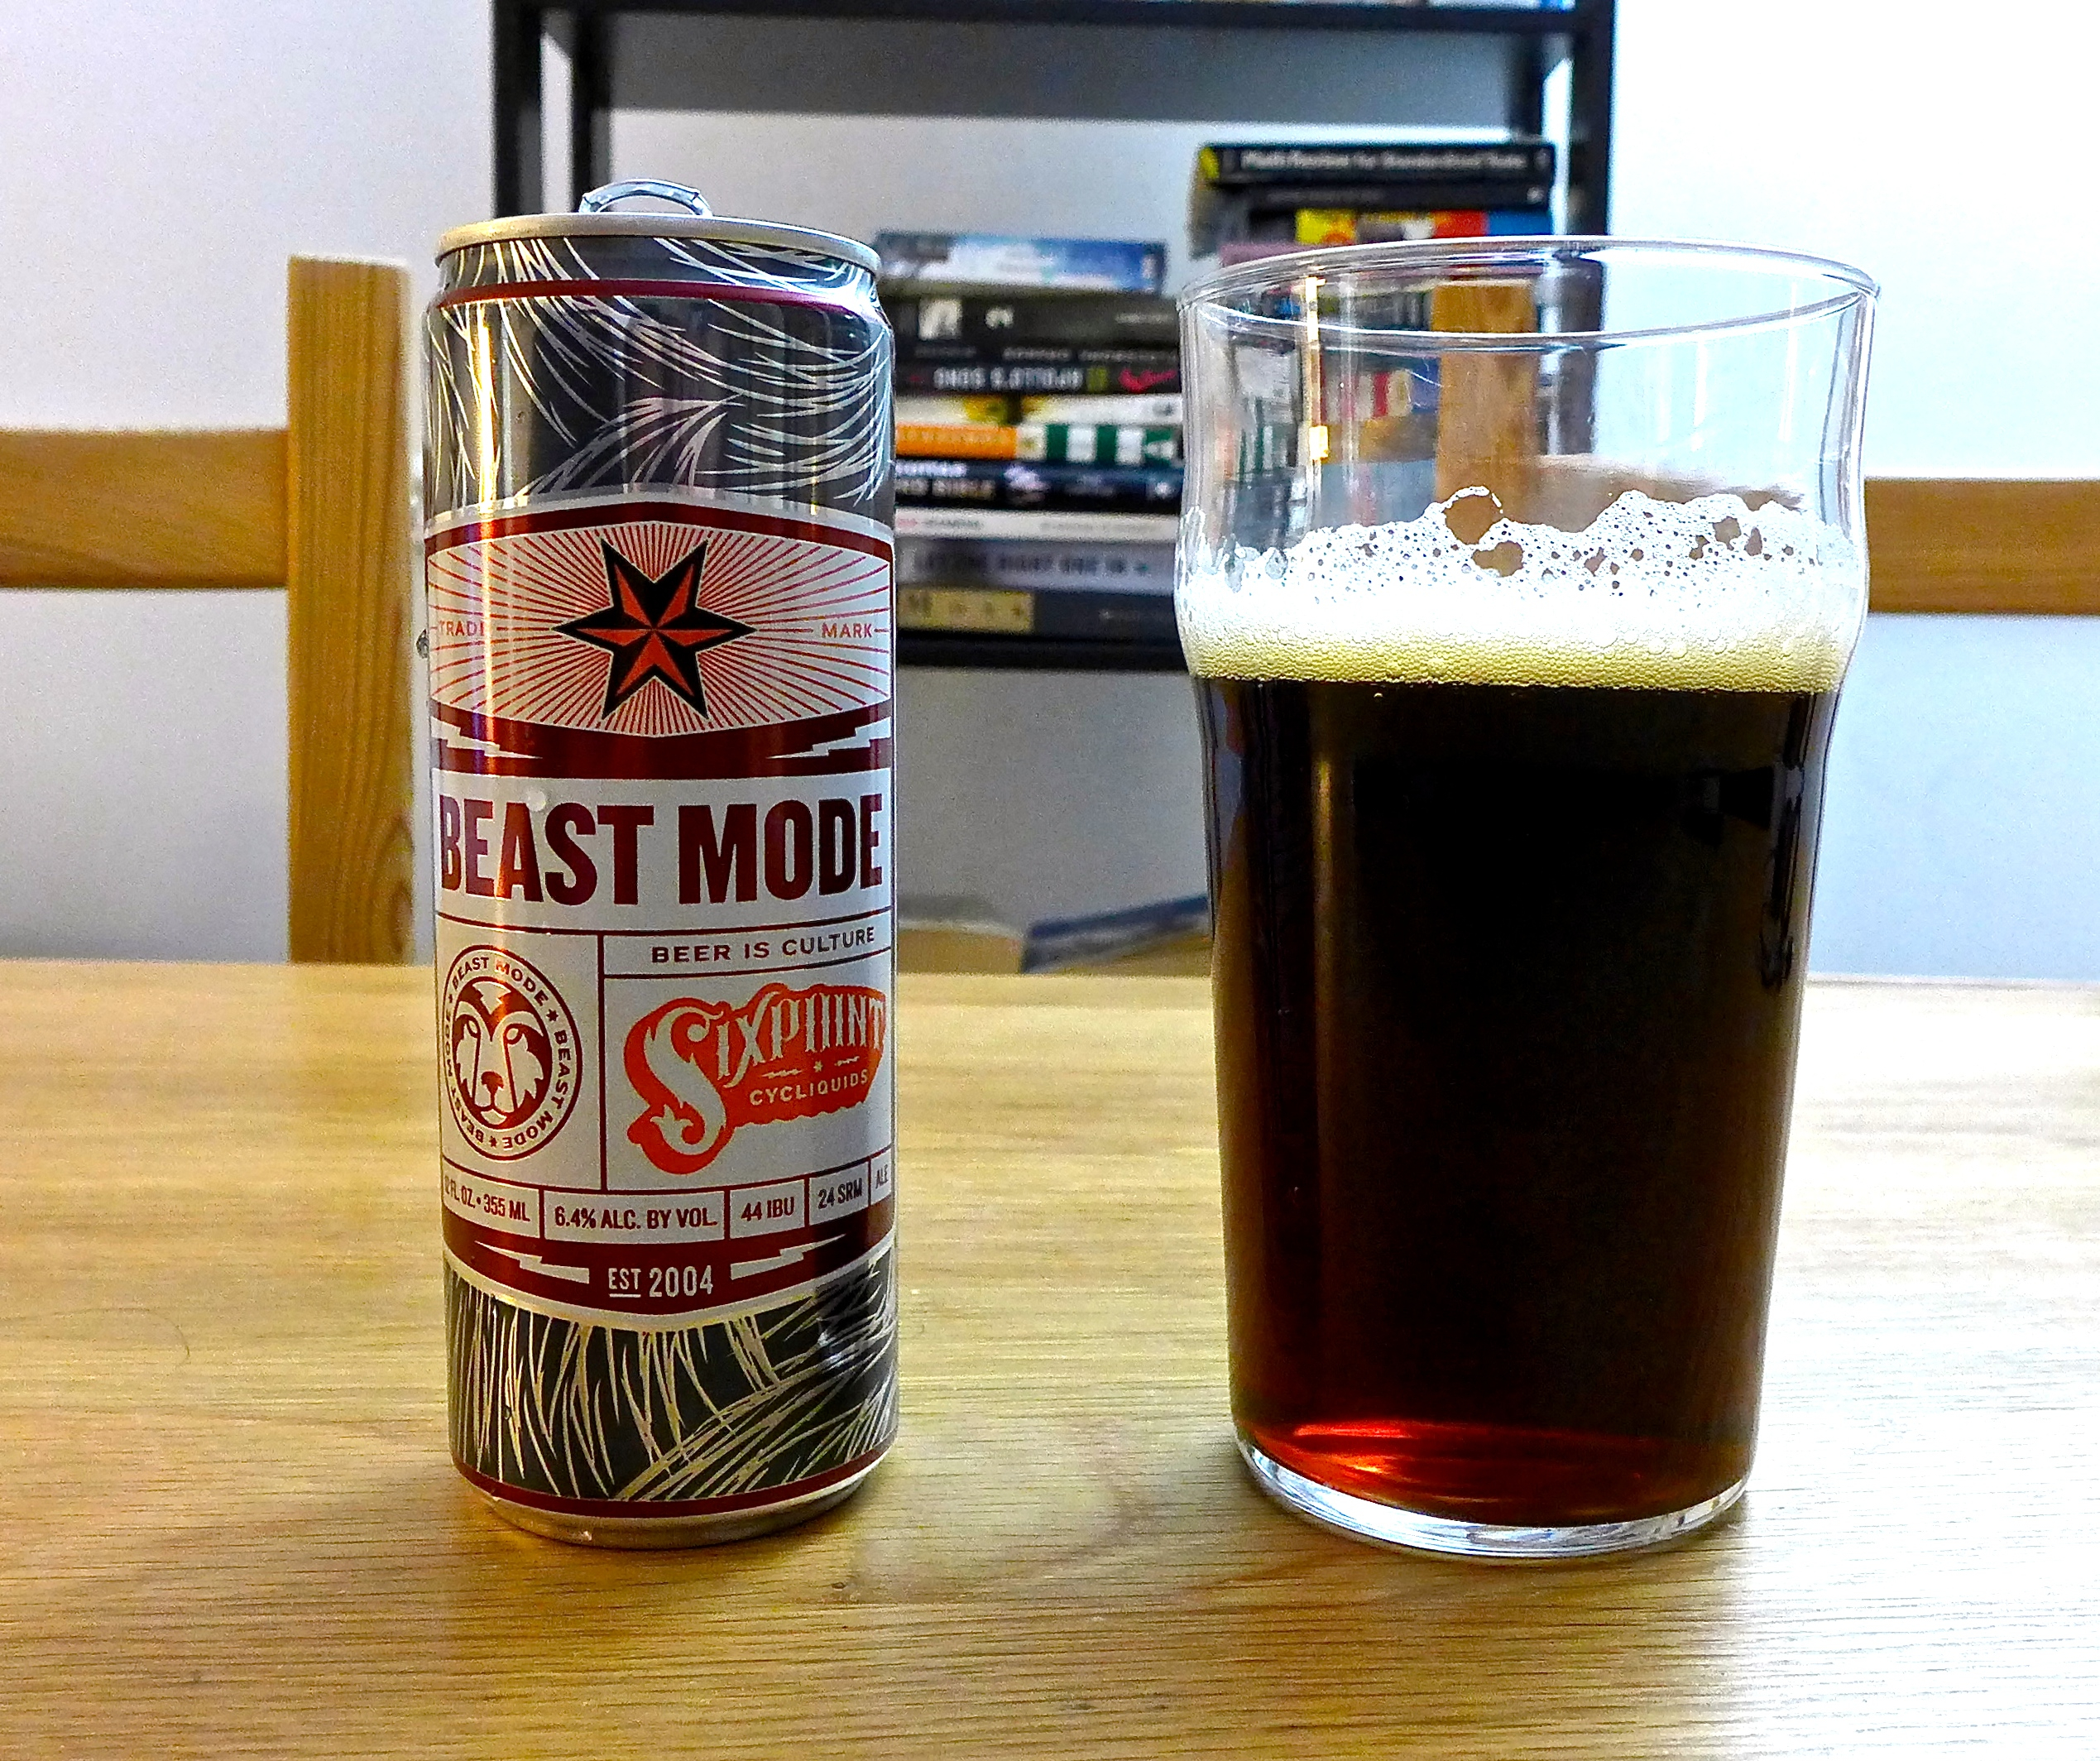 sixpoint-brewery-beast-mode-beer-1